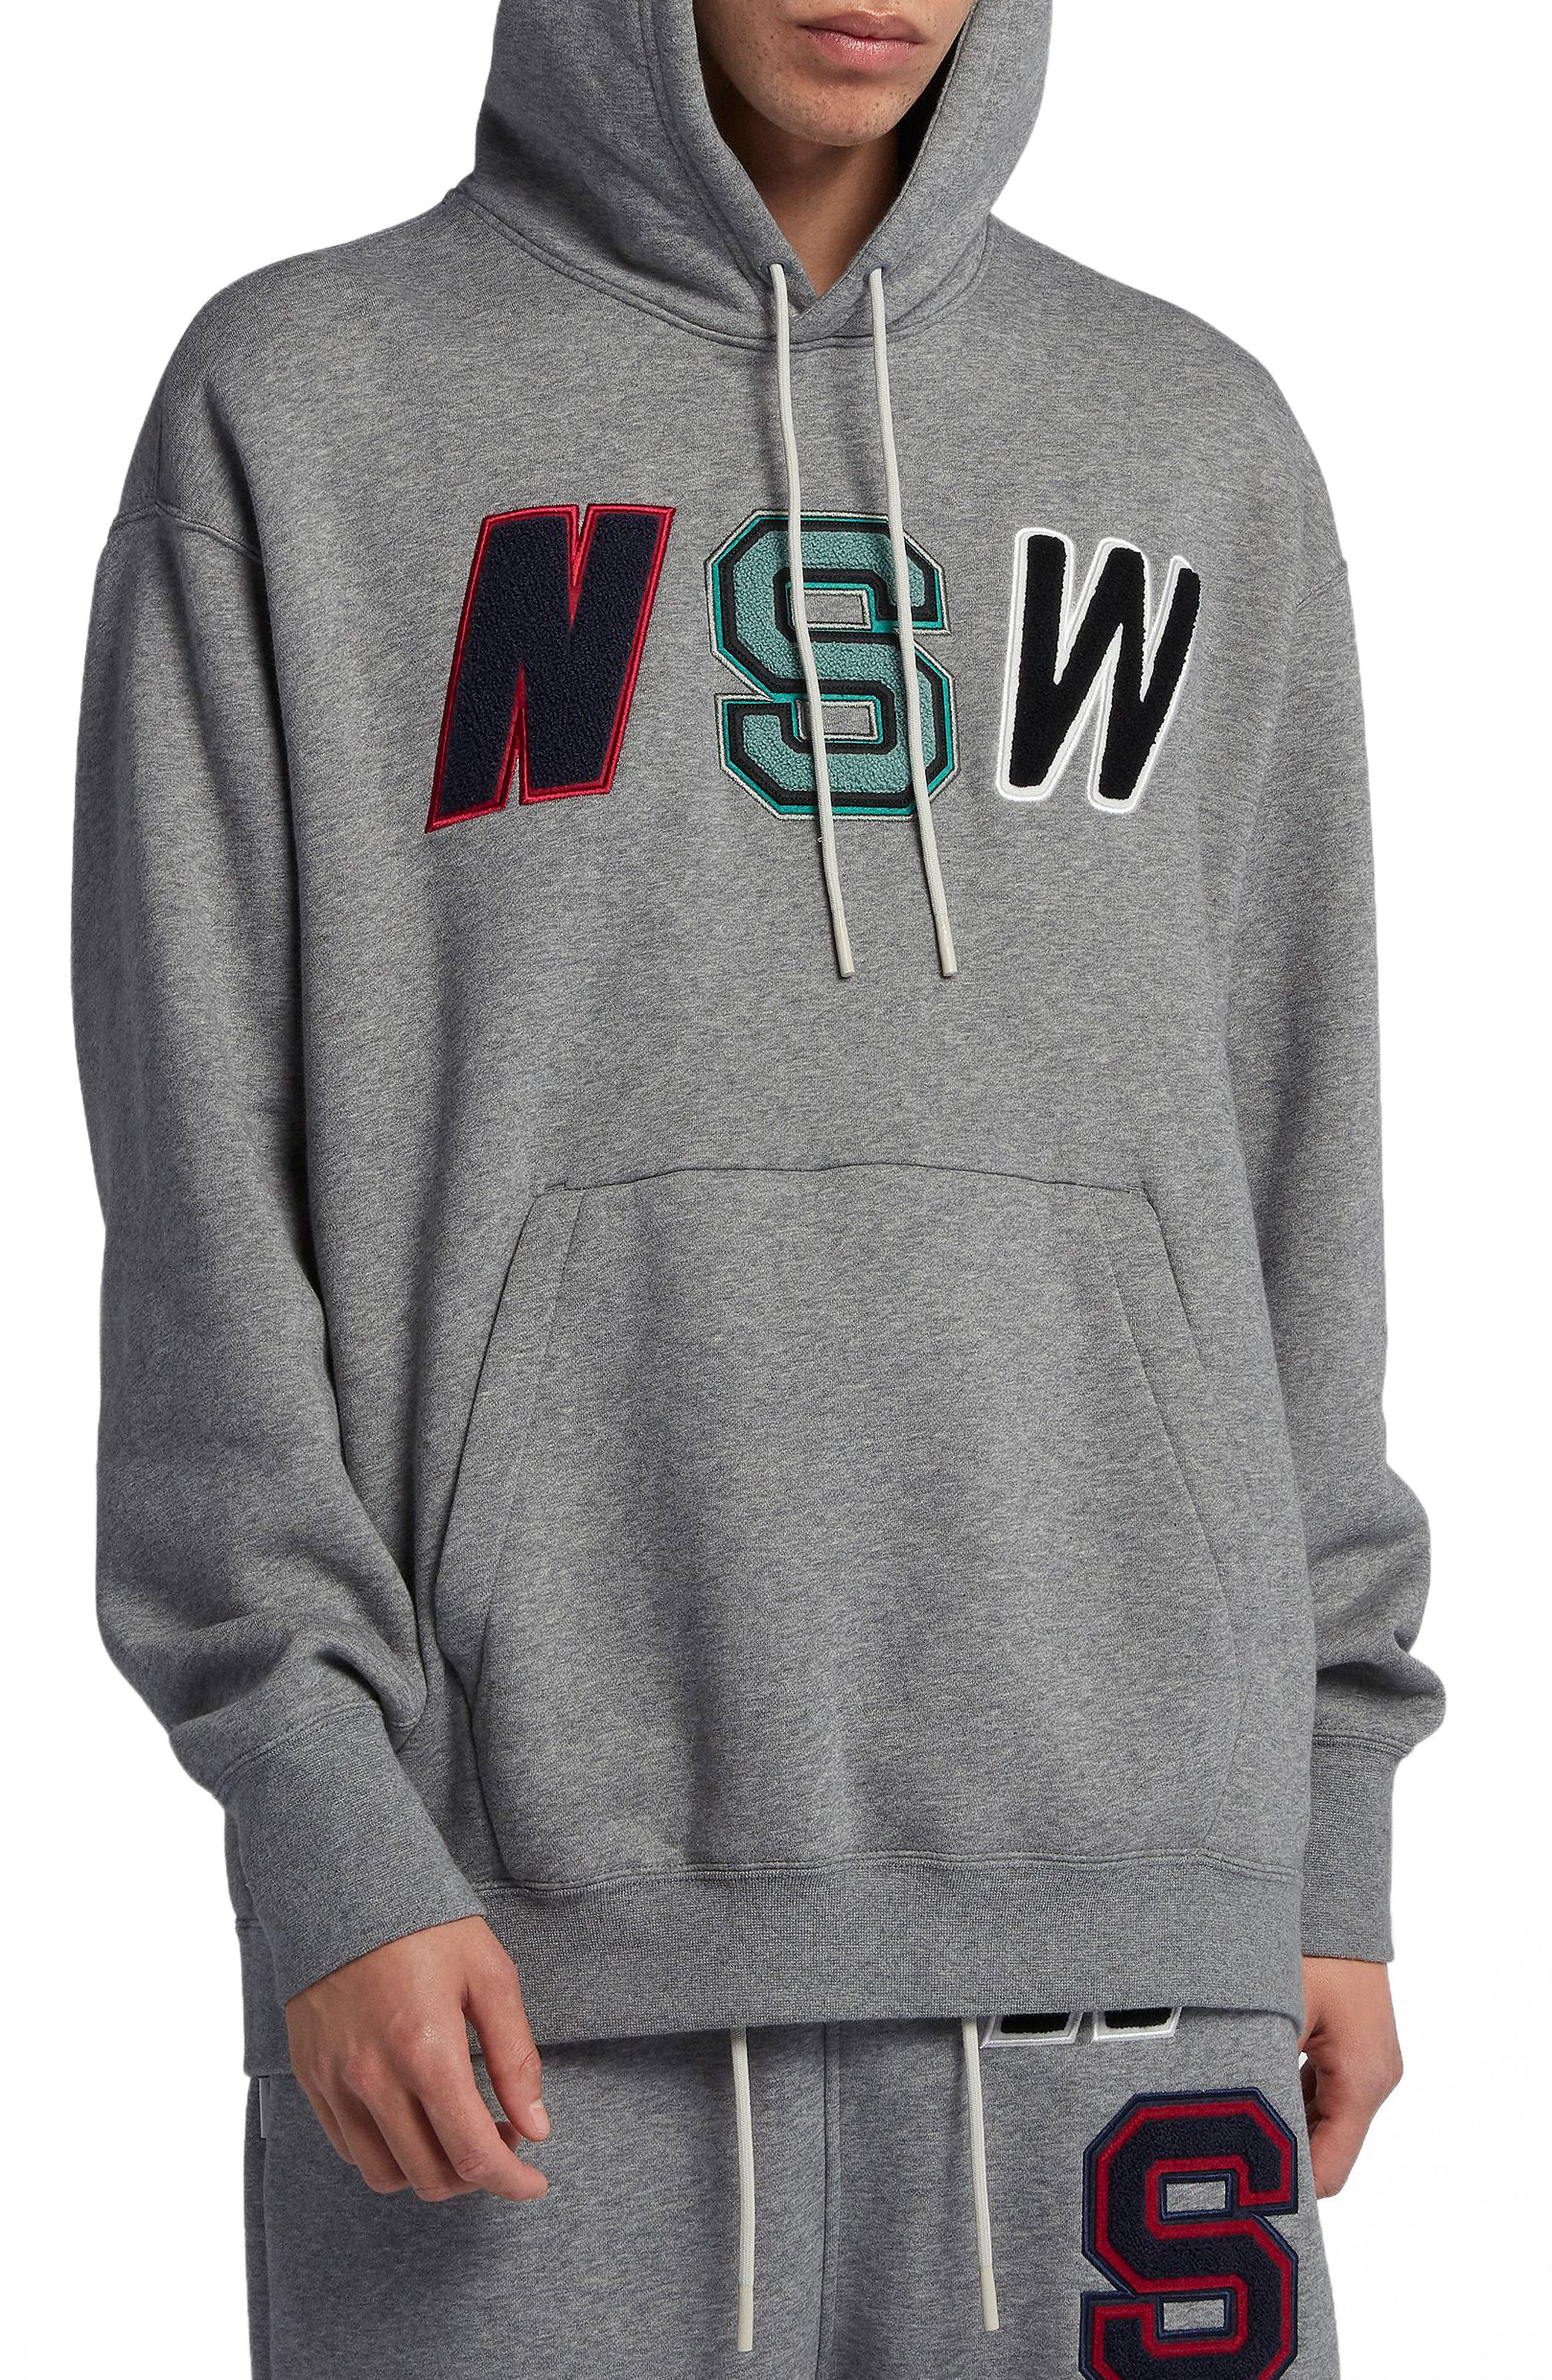 NSW Hoodie,                         Main,                         color, CARBON HEATHER